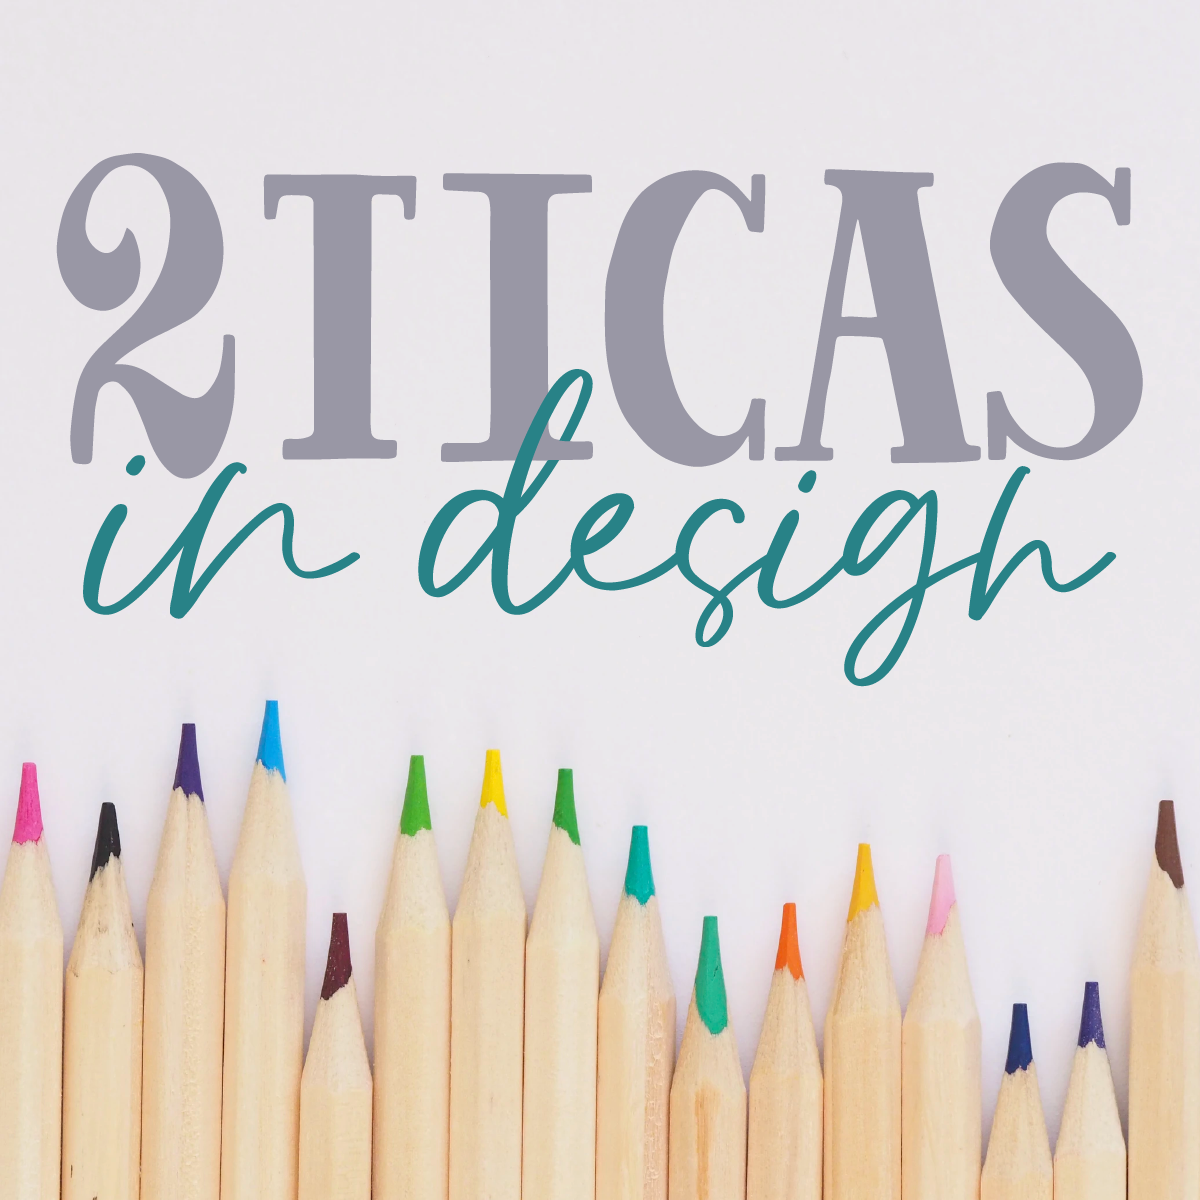 2 Ticas in Design logo floating over colored pencils.